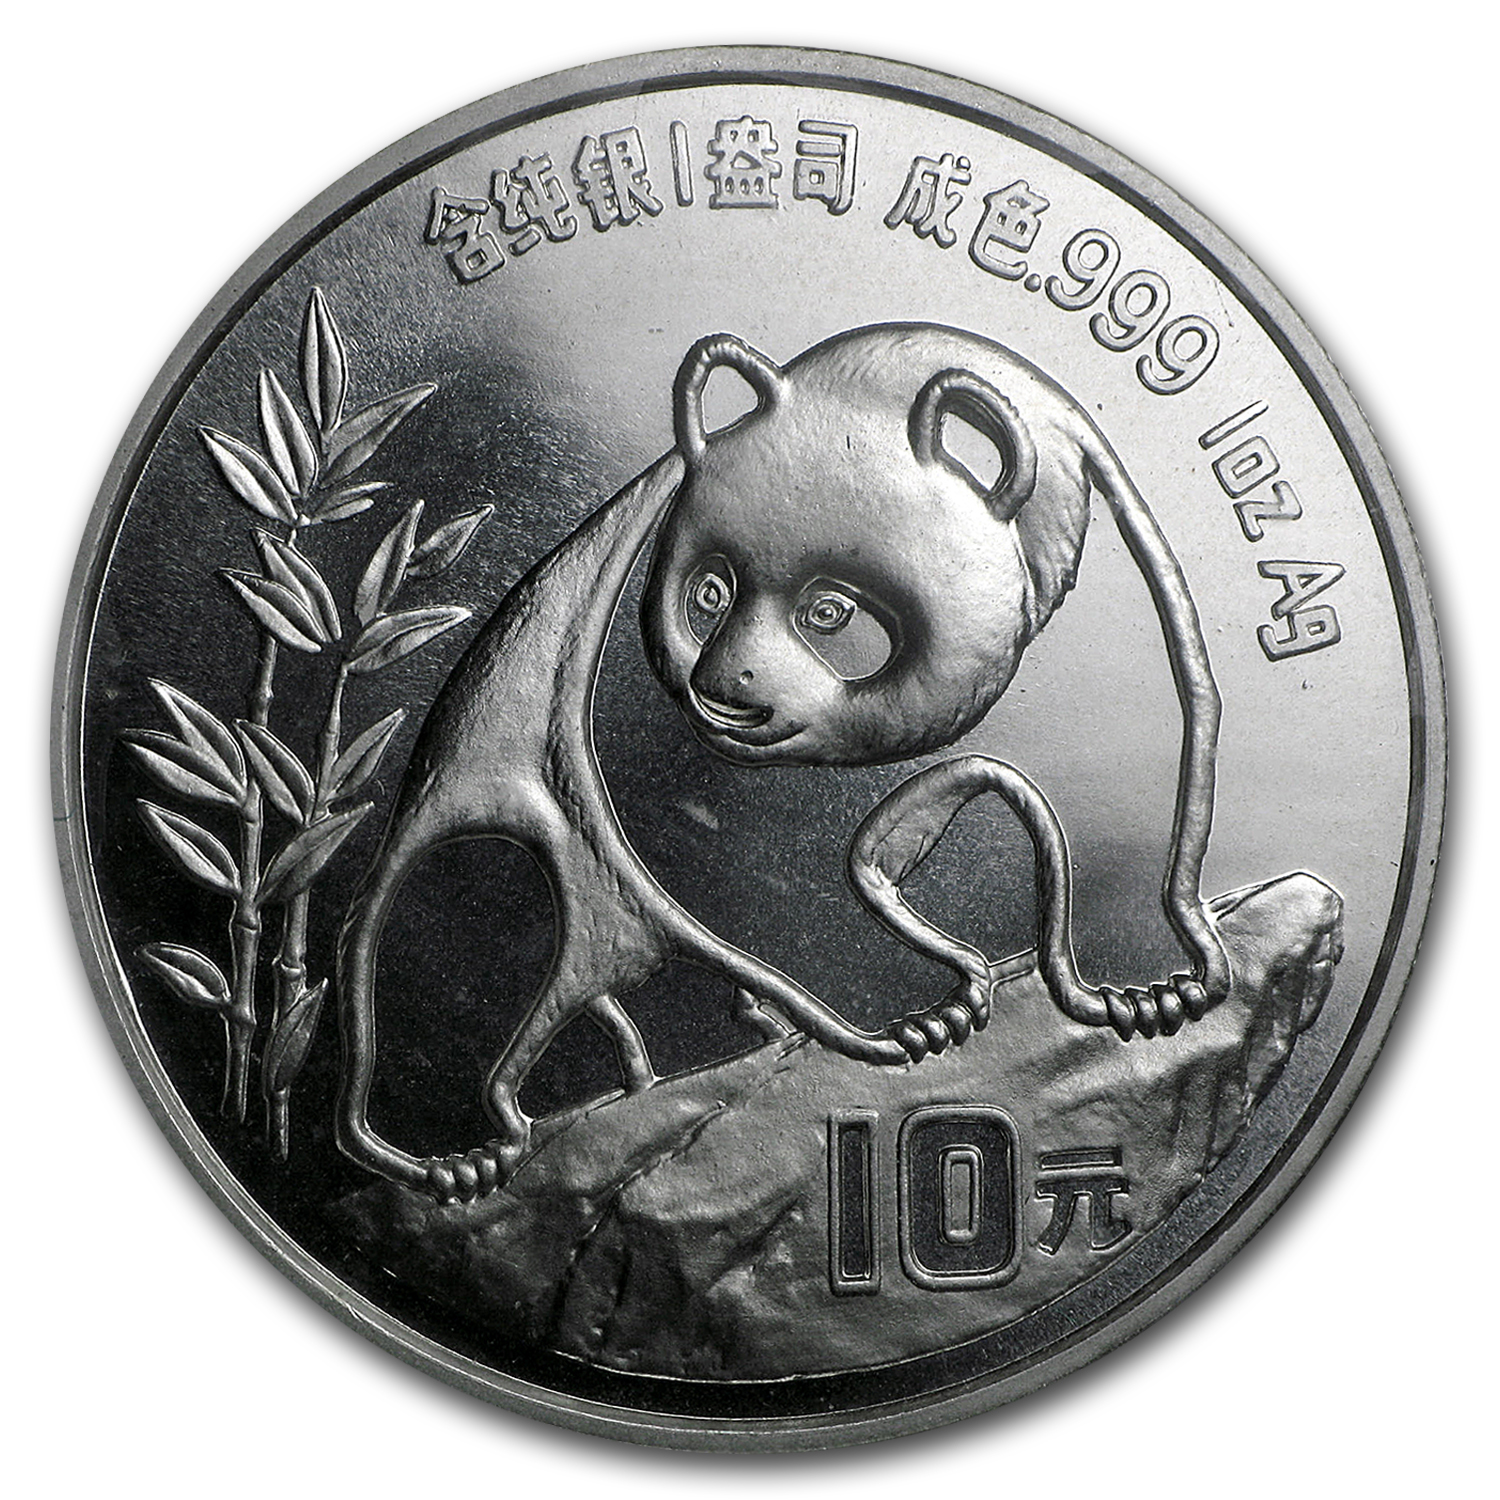 1990 China 1 oz Silver Panda Small Date BU (Sealed)